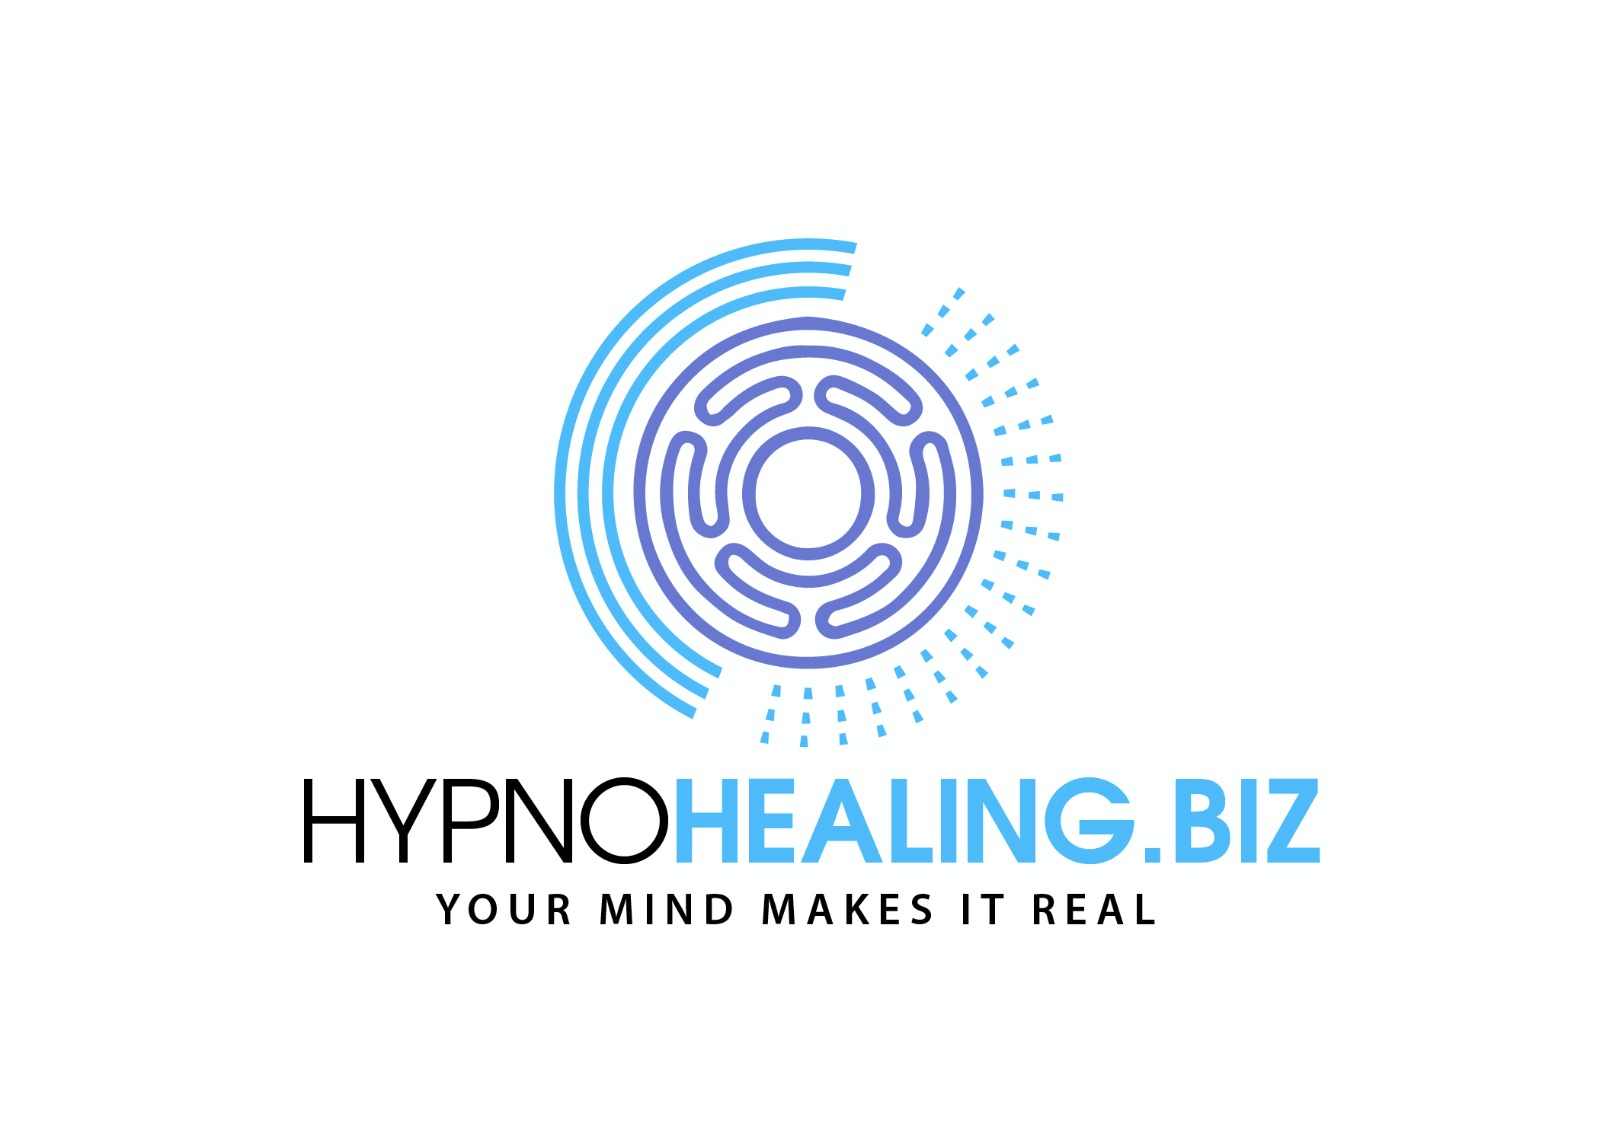 Acoustic Hypnotherapy